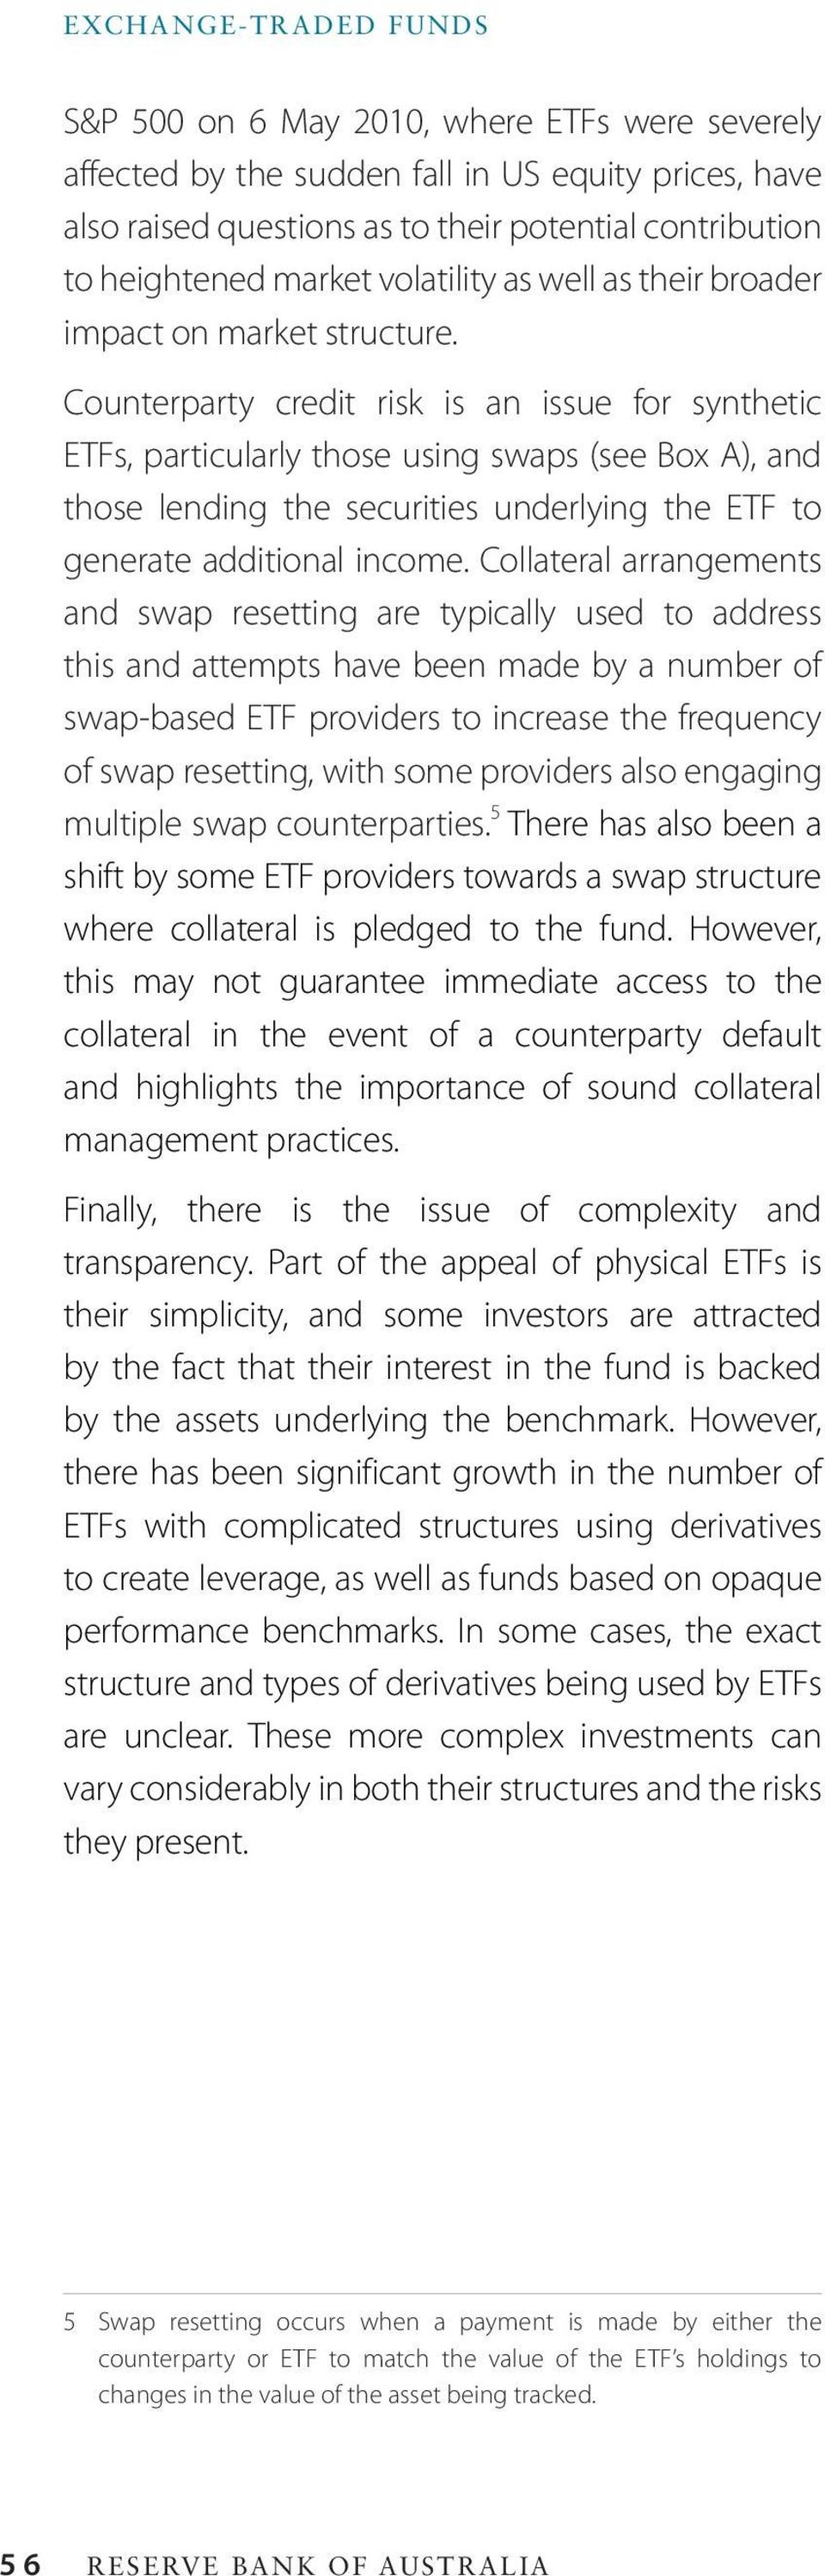 Counterparty credit risk is an issue for synthetic ETFs, particularly those using swaps (see Box A), and those lending the securities underlying the ETF to generate additional income.